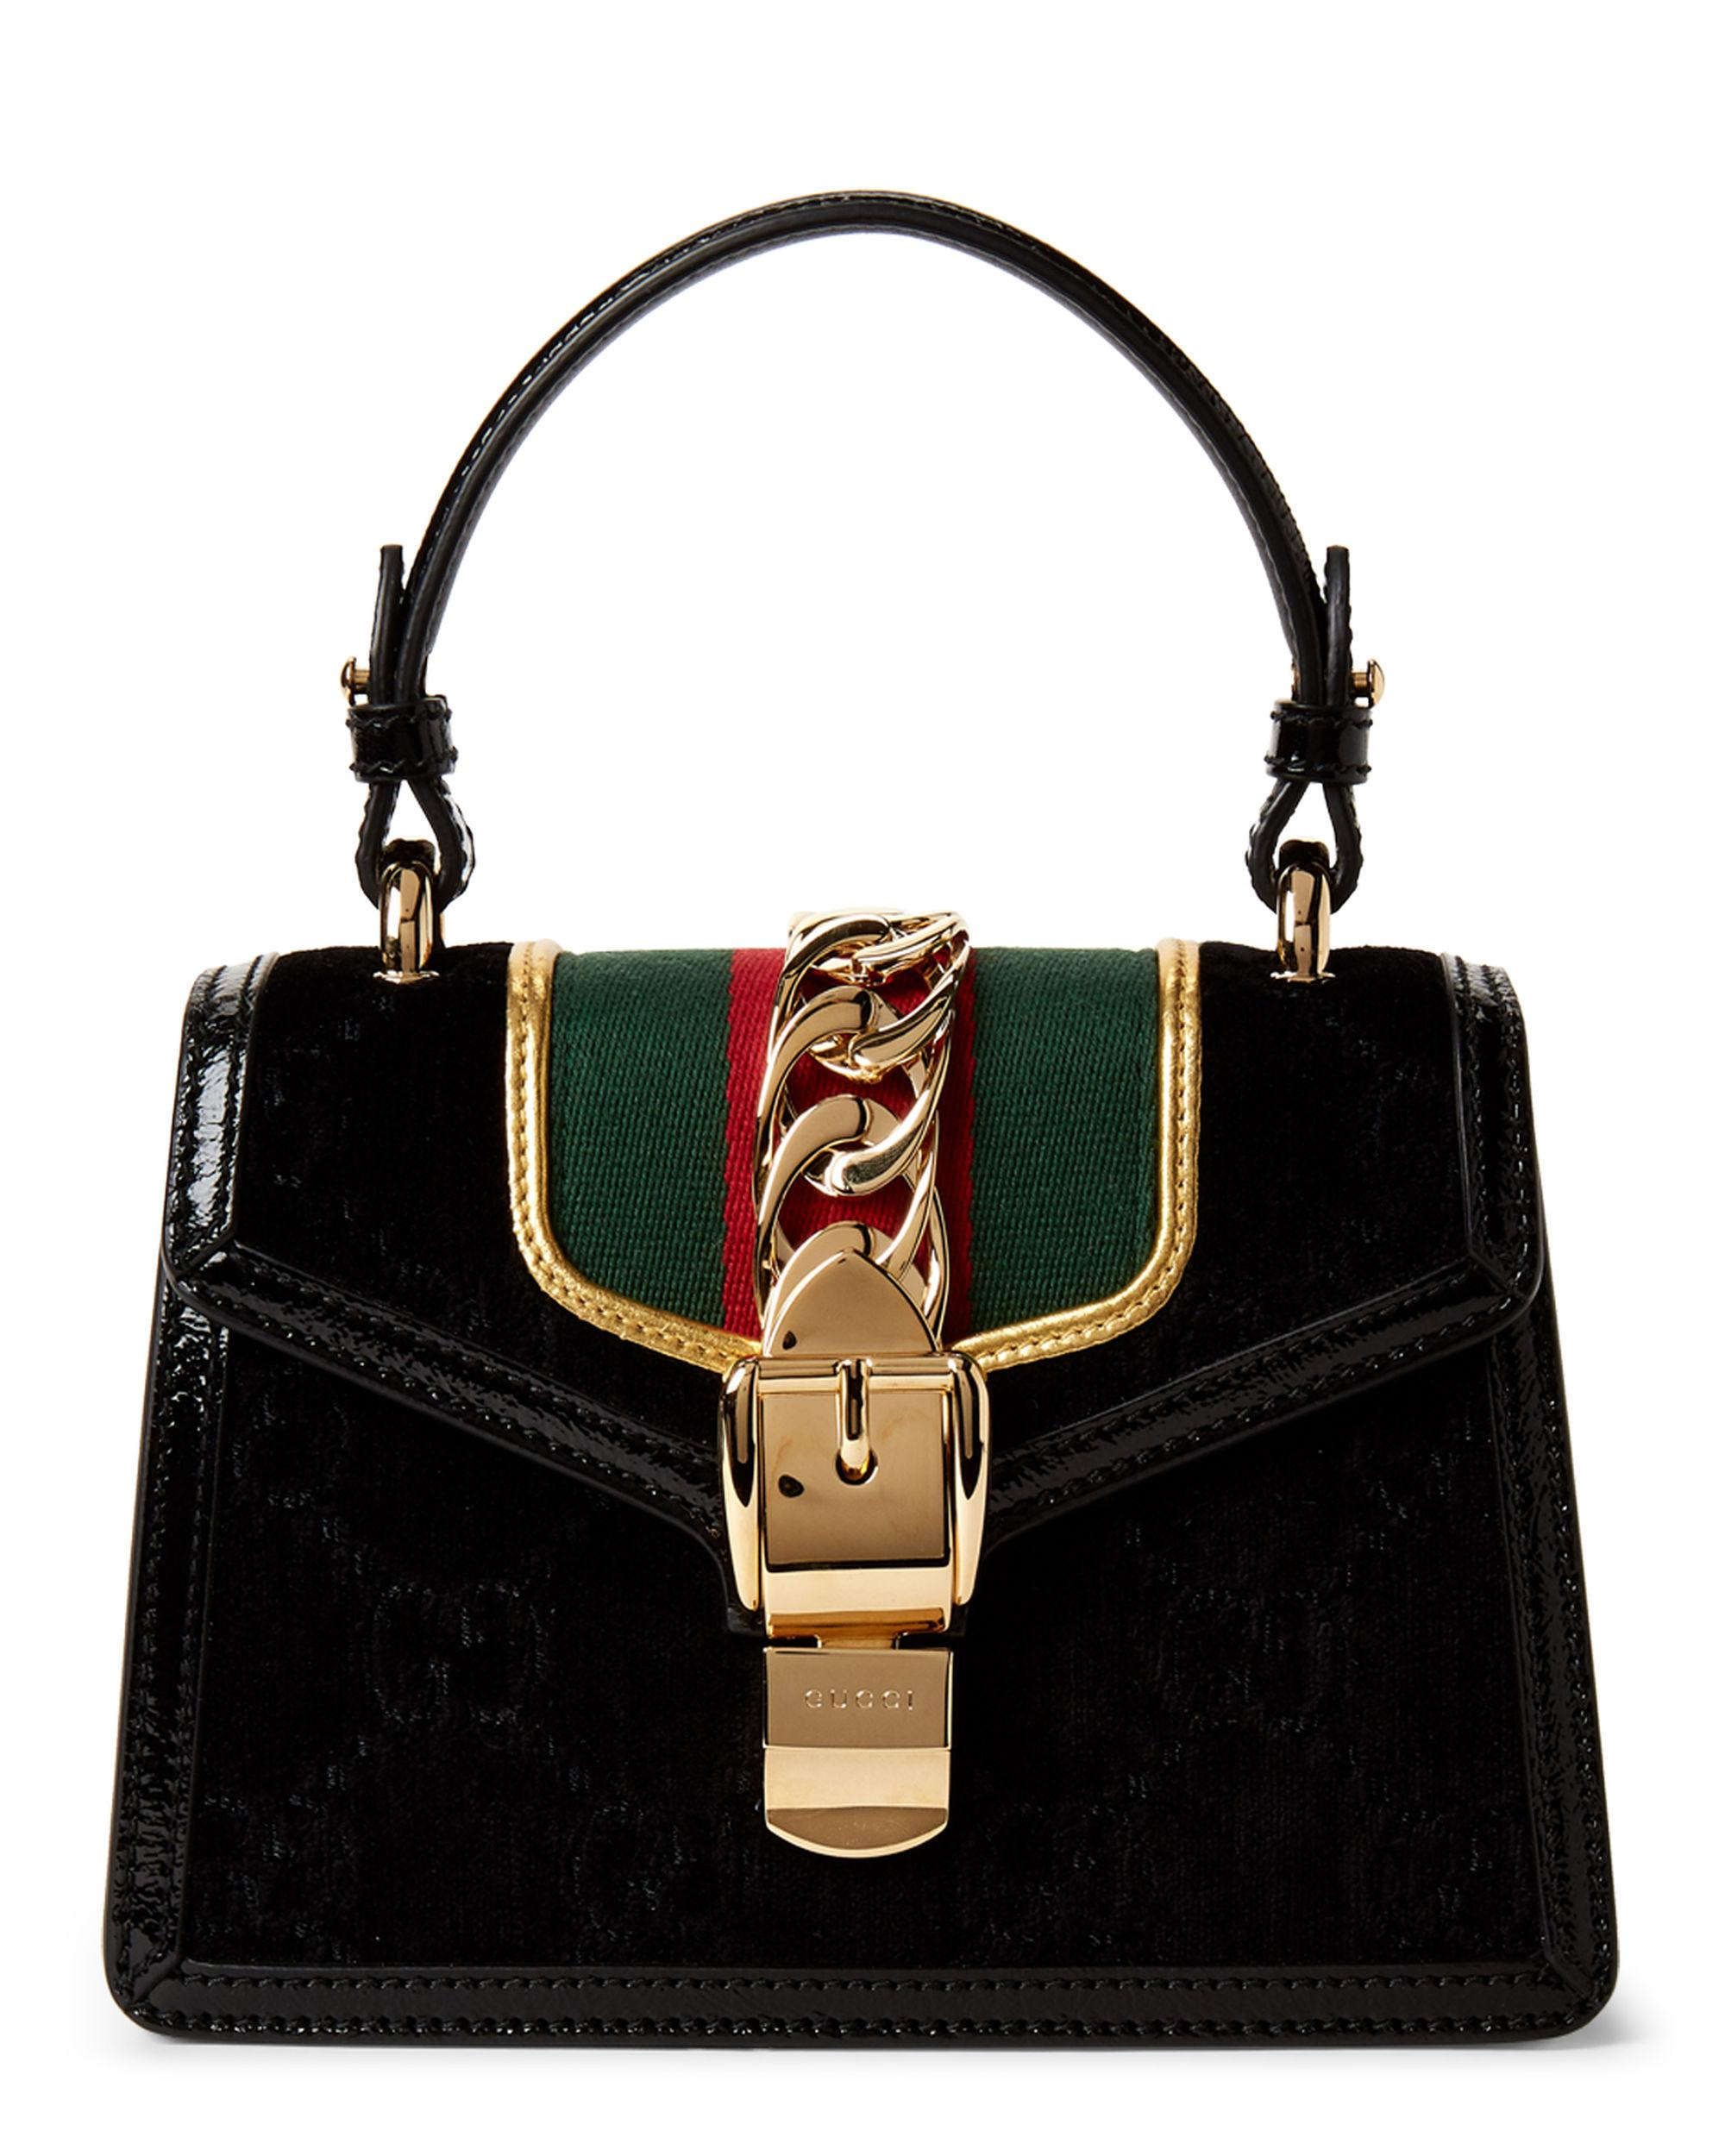 6c56f90c56f542 Lyst - Gucci Black Sylvie GG Velvet Mini Top Handle Bag in Black